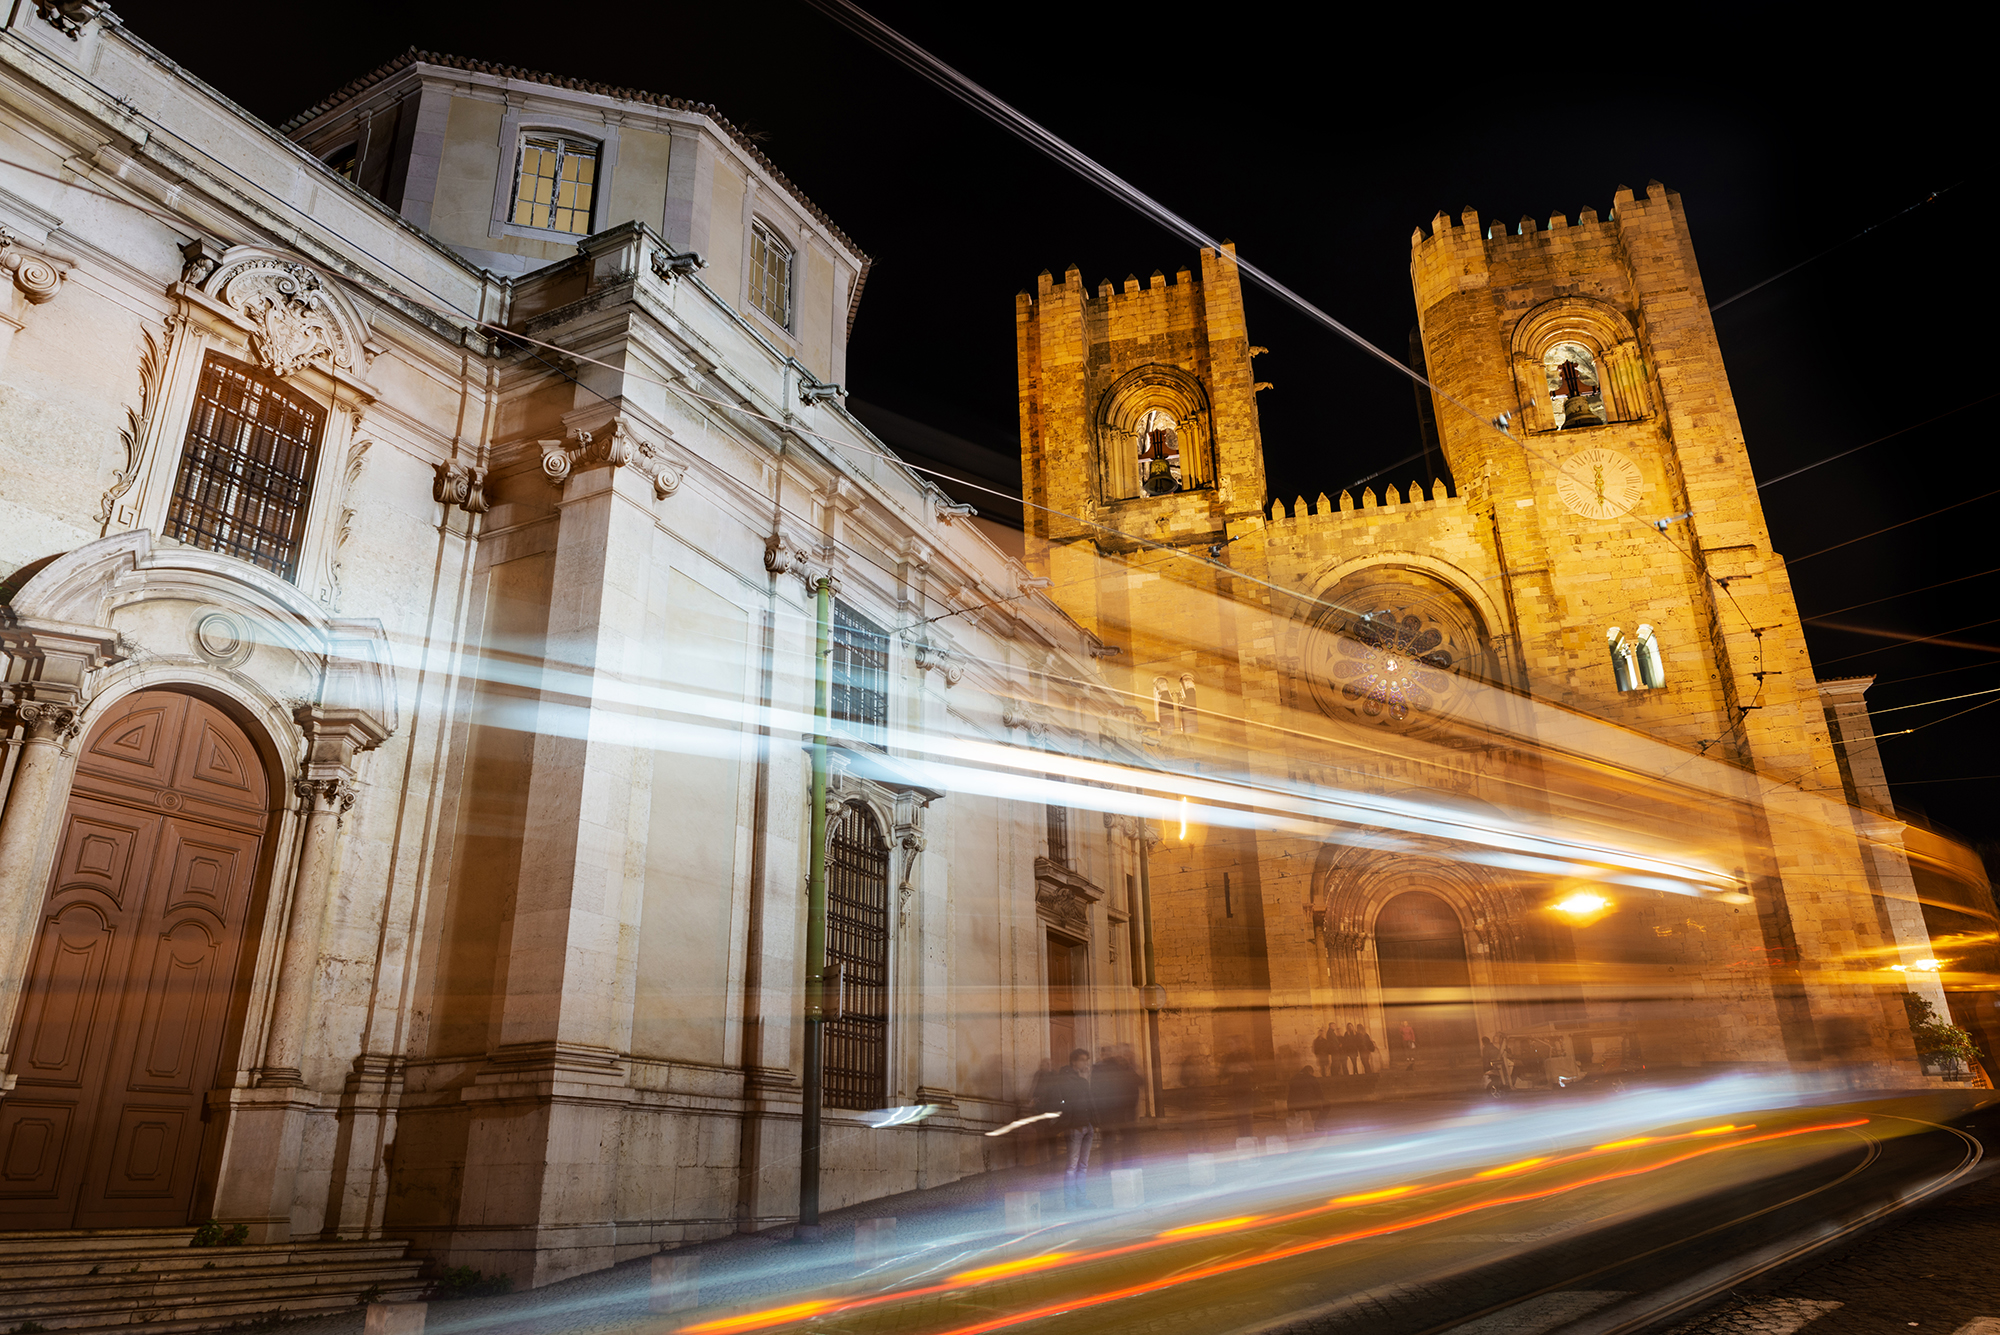 Facade of the famous Lisbon Cathedral (Sé) illuminated at night